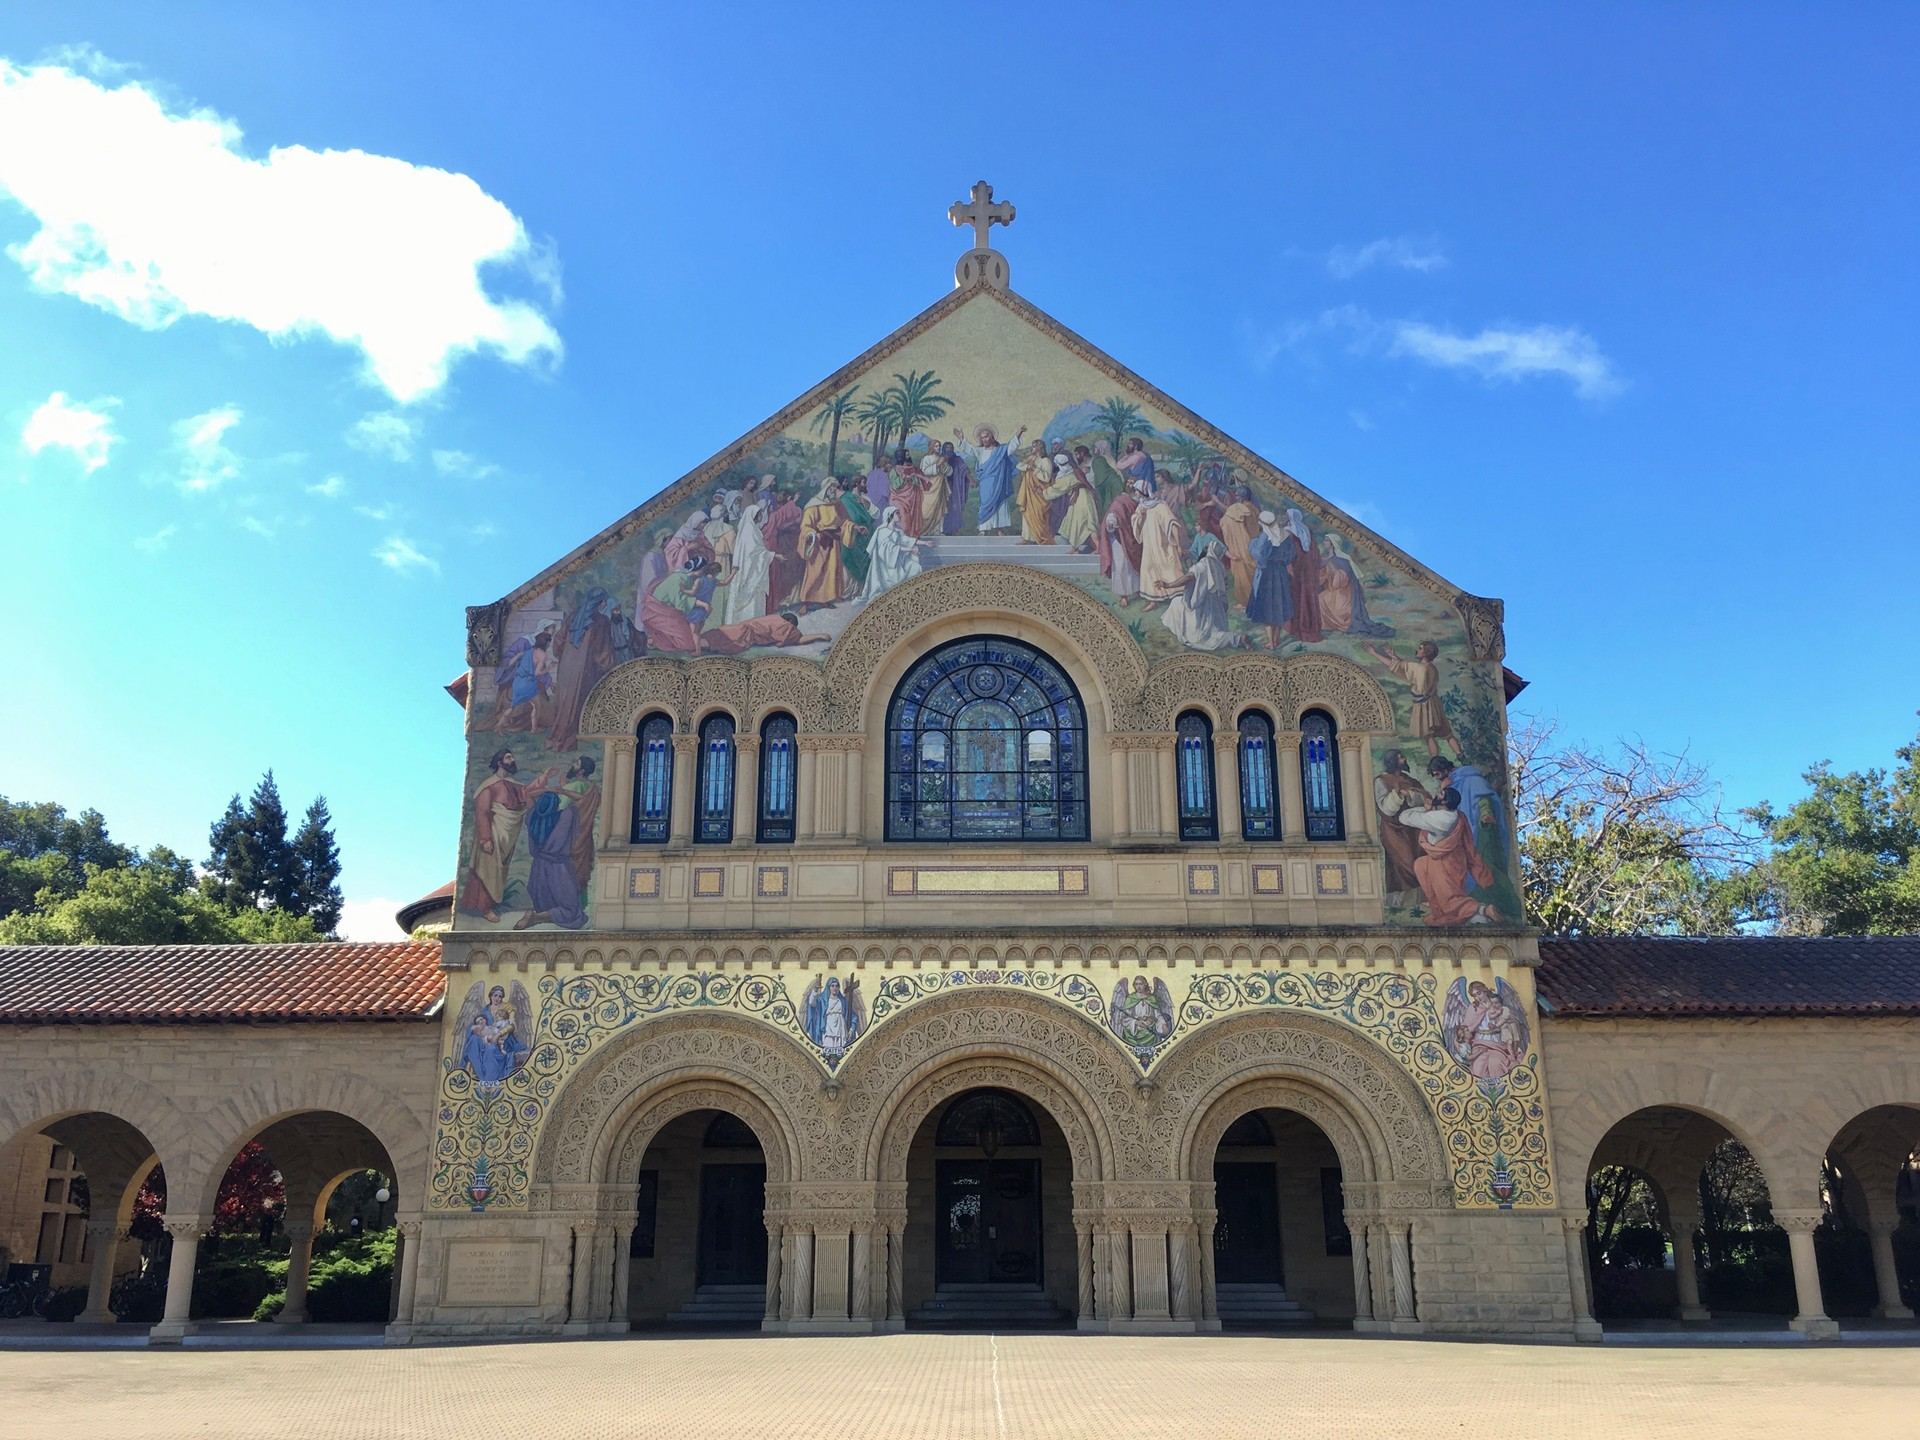 Once the Santa Clara County Planning Commission decides on a recommendation, yes or no, the Board of Supervisors will vote on whether to approve Stanford's general use plan.